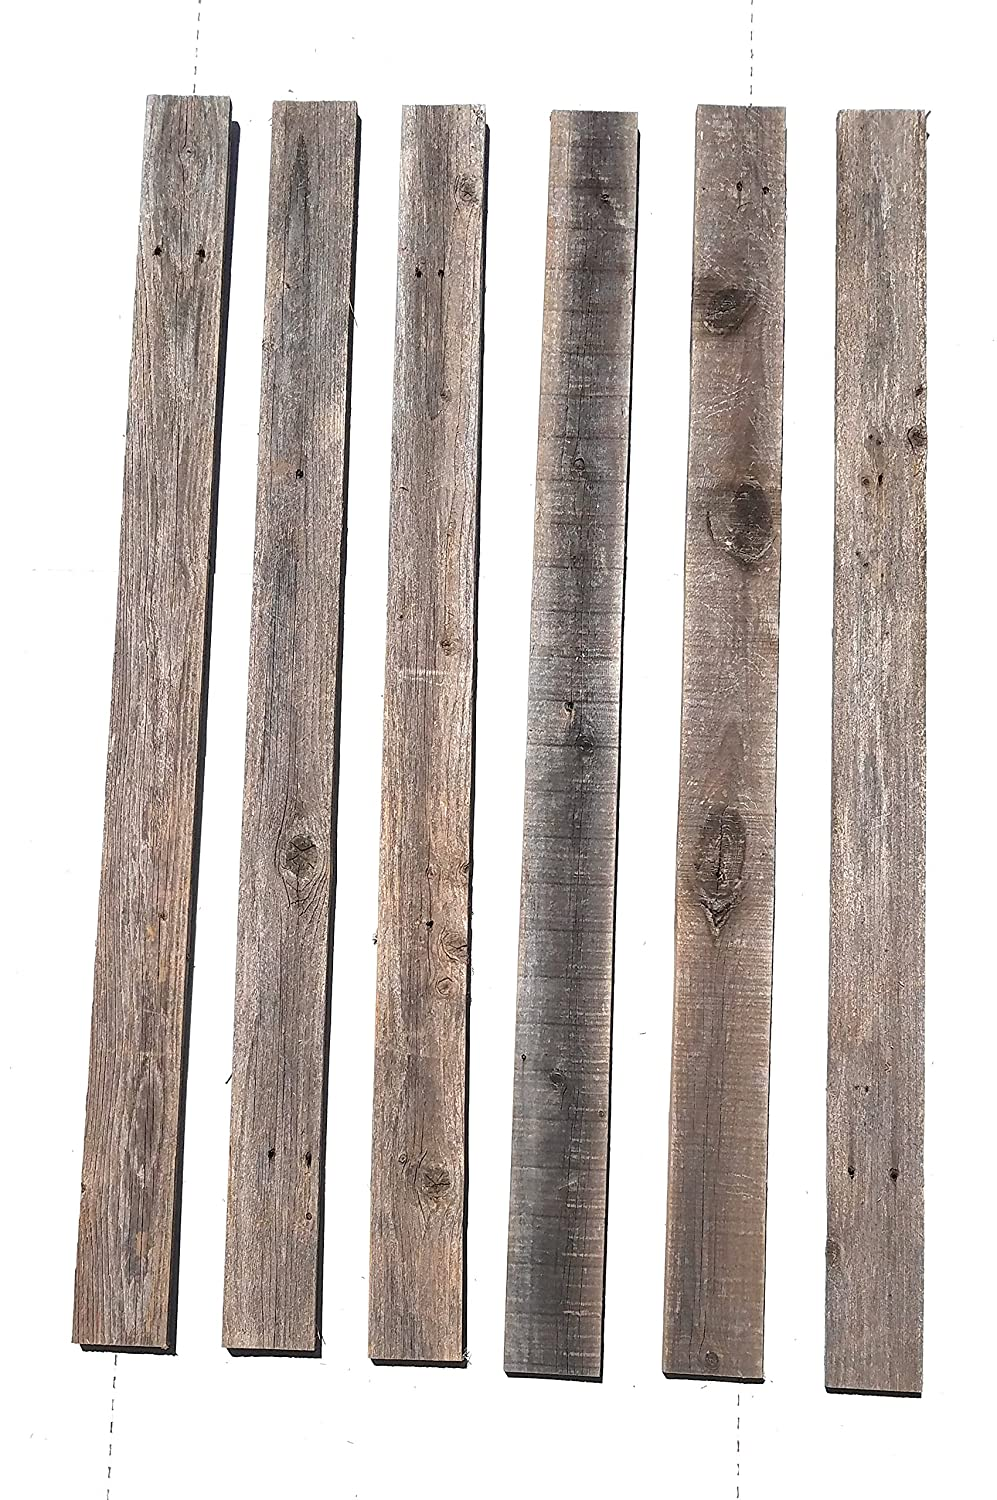 Projects and Decor Rustic Weathered Reclaimed Wood Planks for DIY Crafts 20 Planks - 48 Long